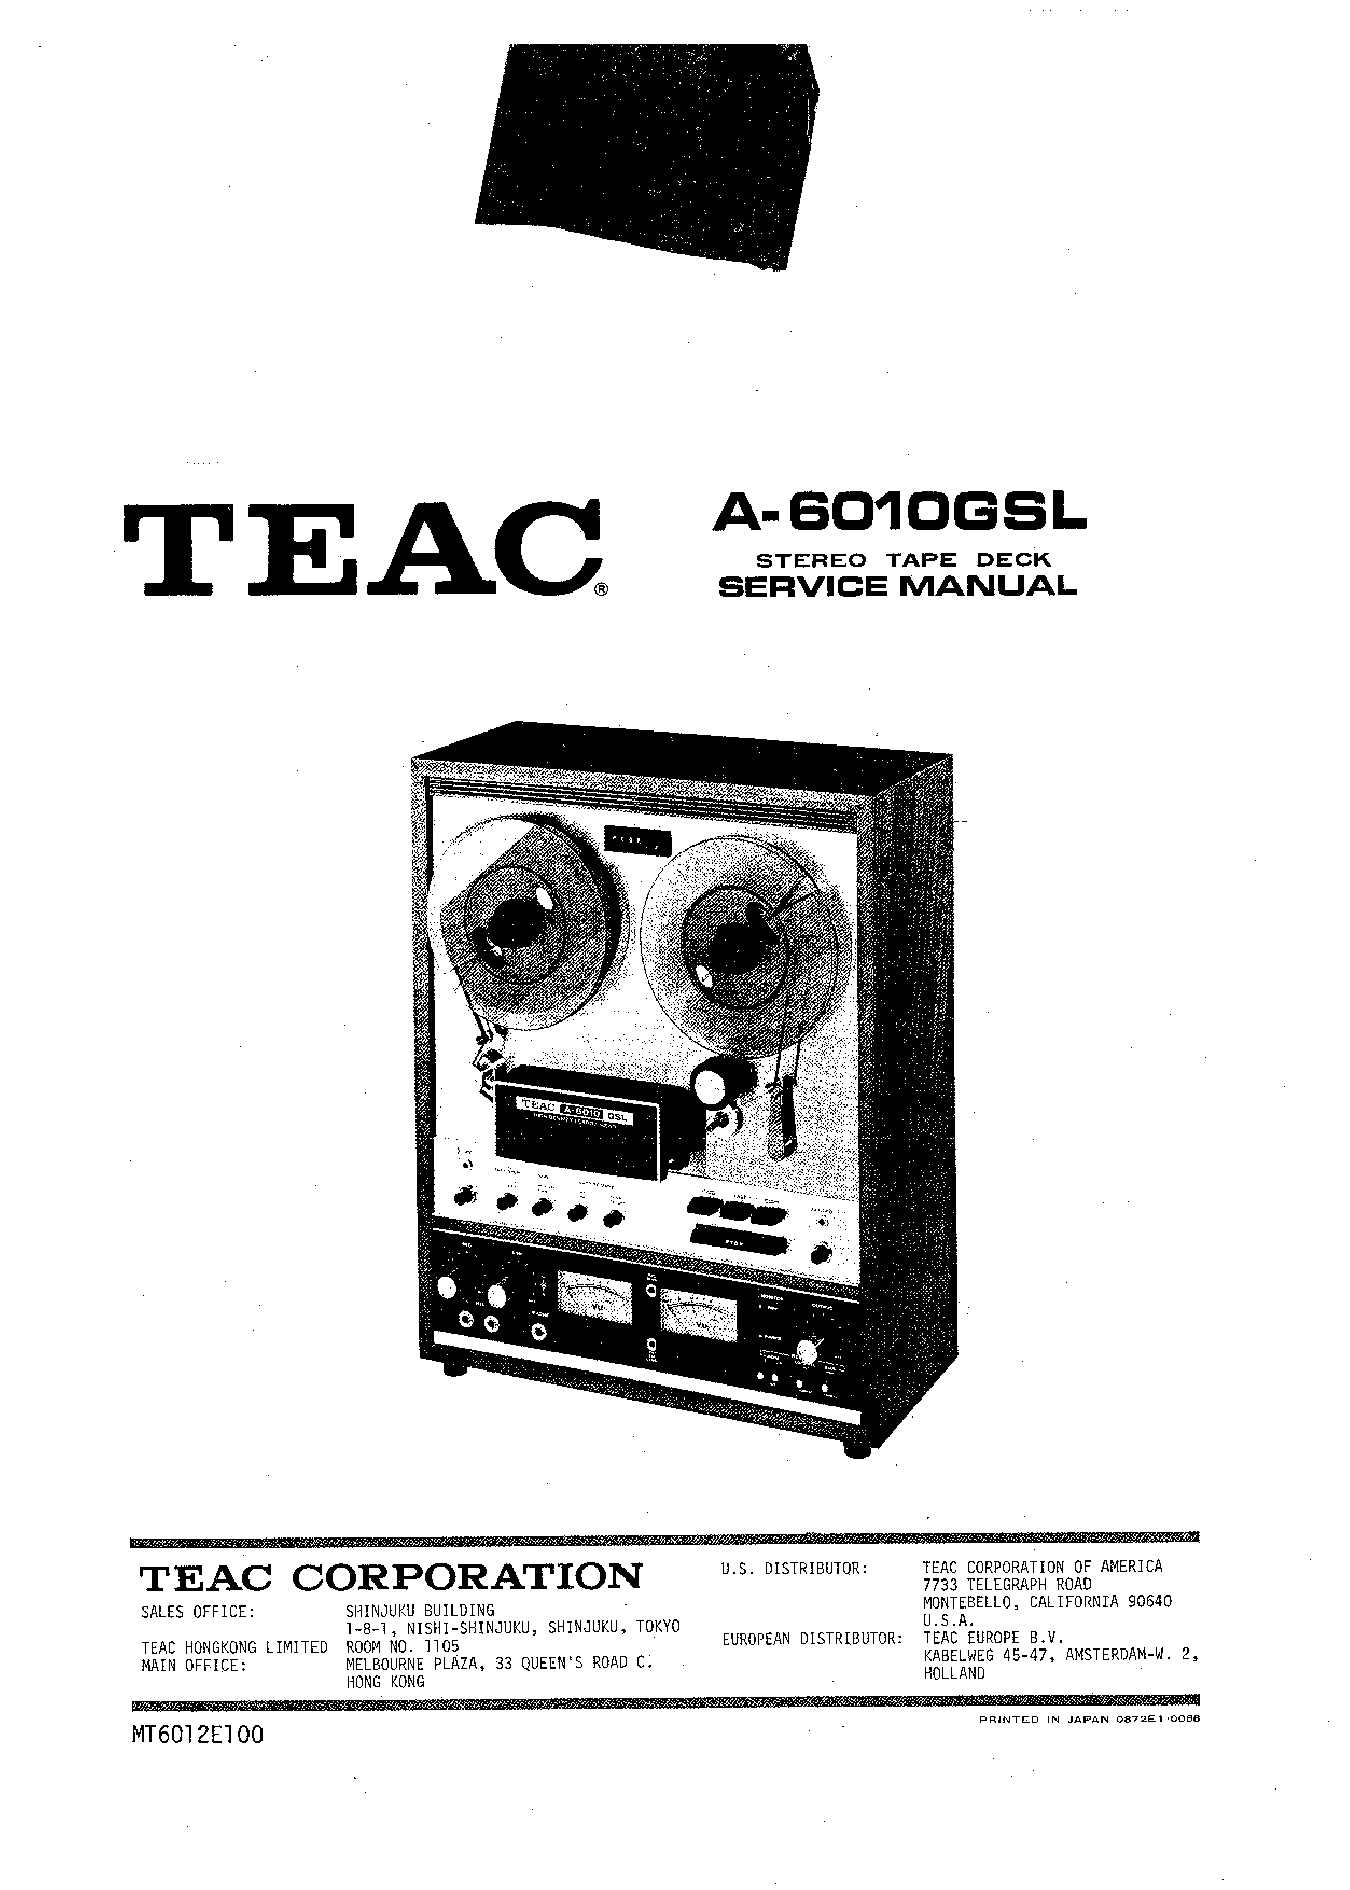 Teac 6010 Service Manual   Free Programs  Utilities And Apps